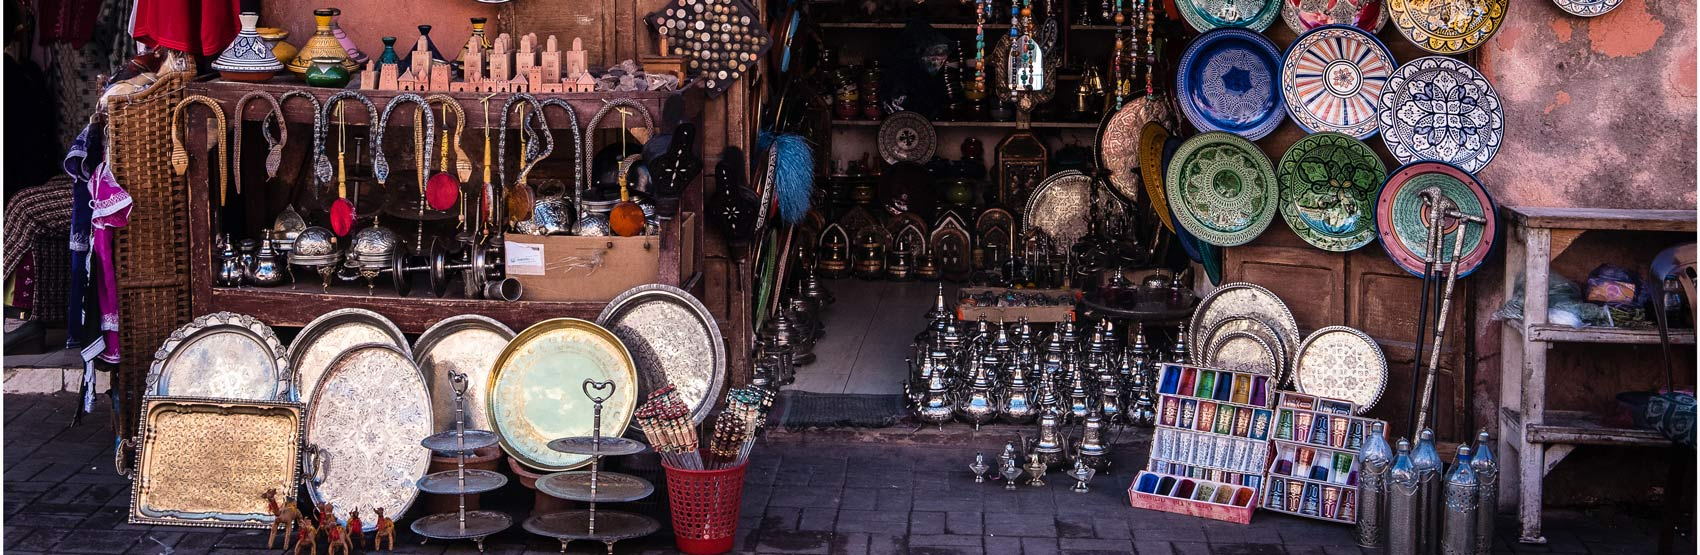 Shopping in Marrakech Souk, Handmade Metal Trays, Dishes and Trinkets